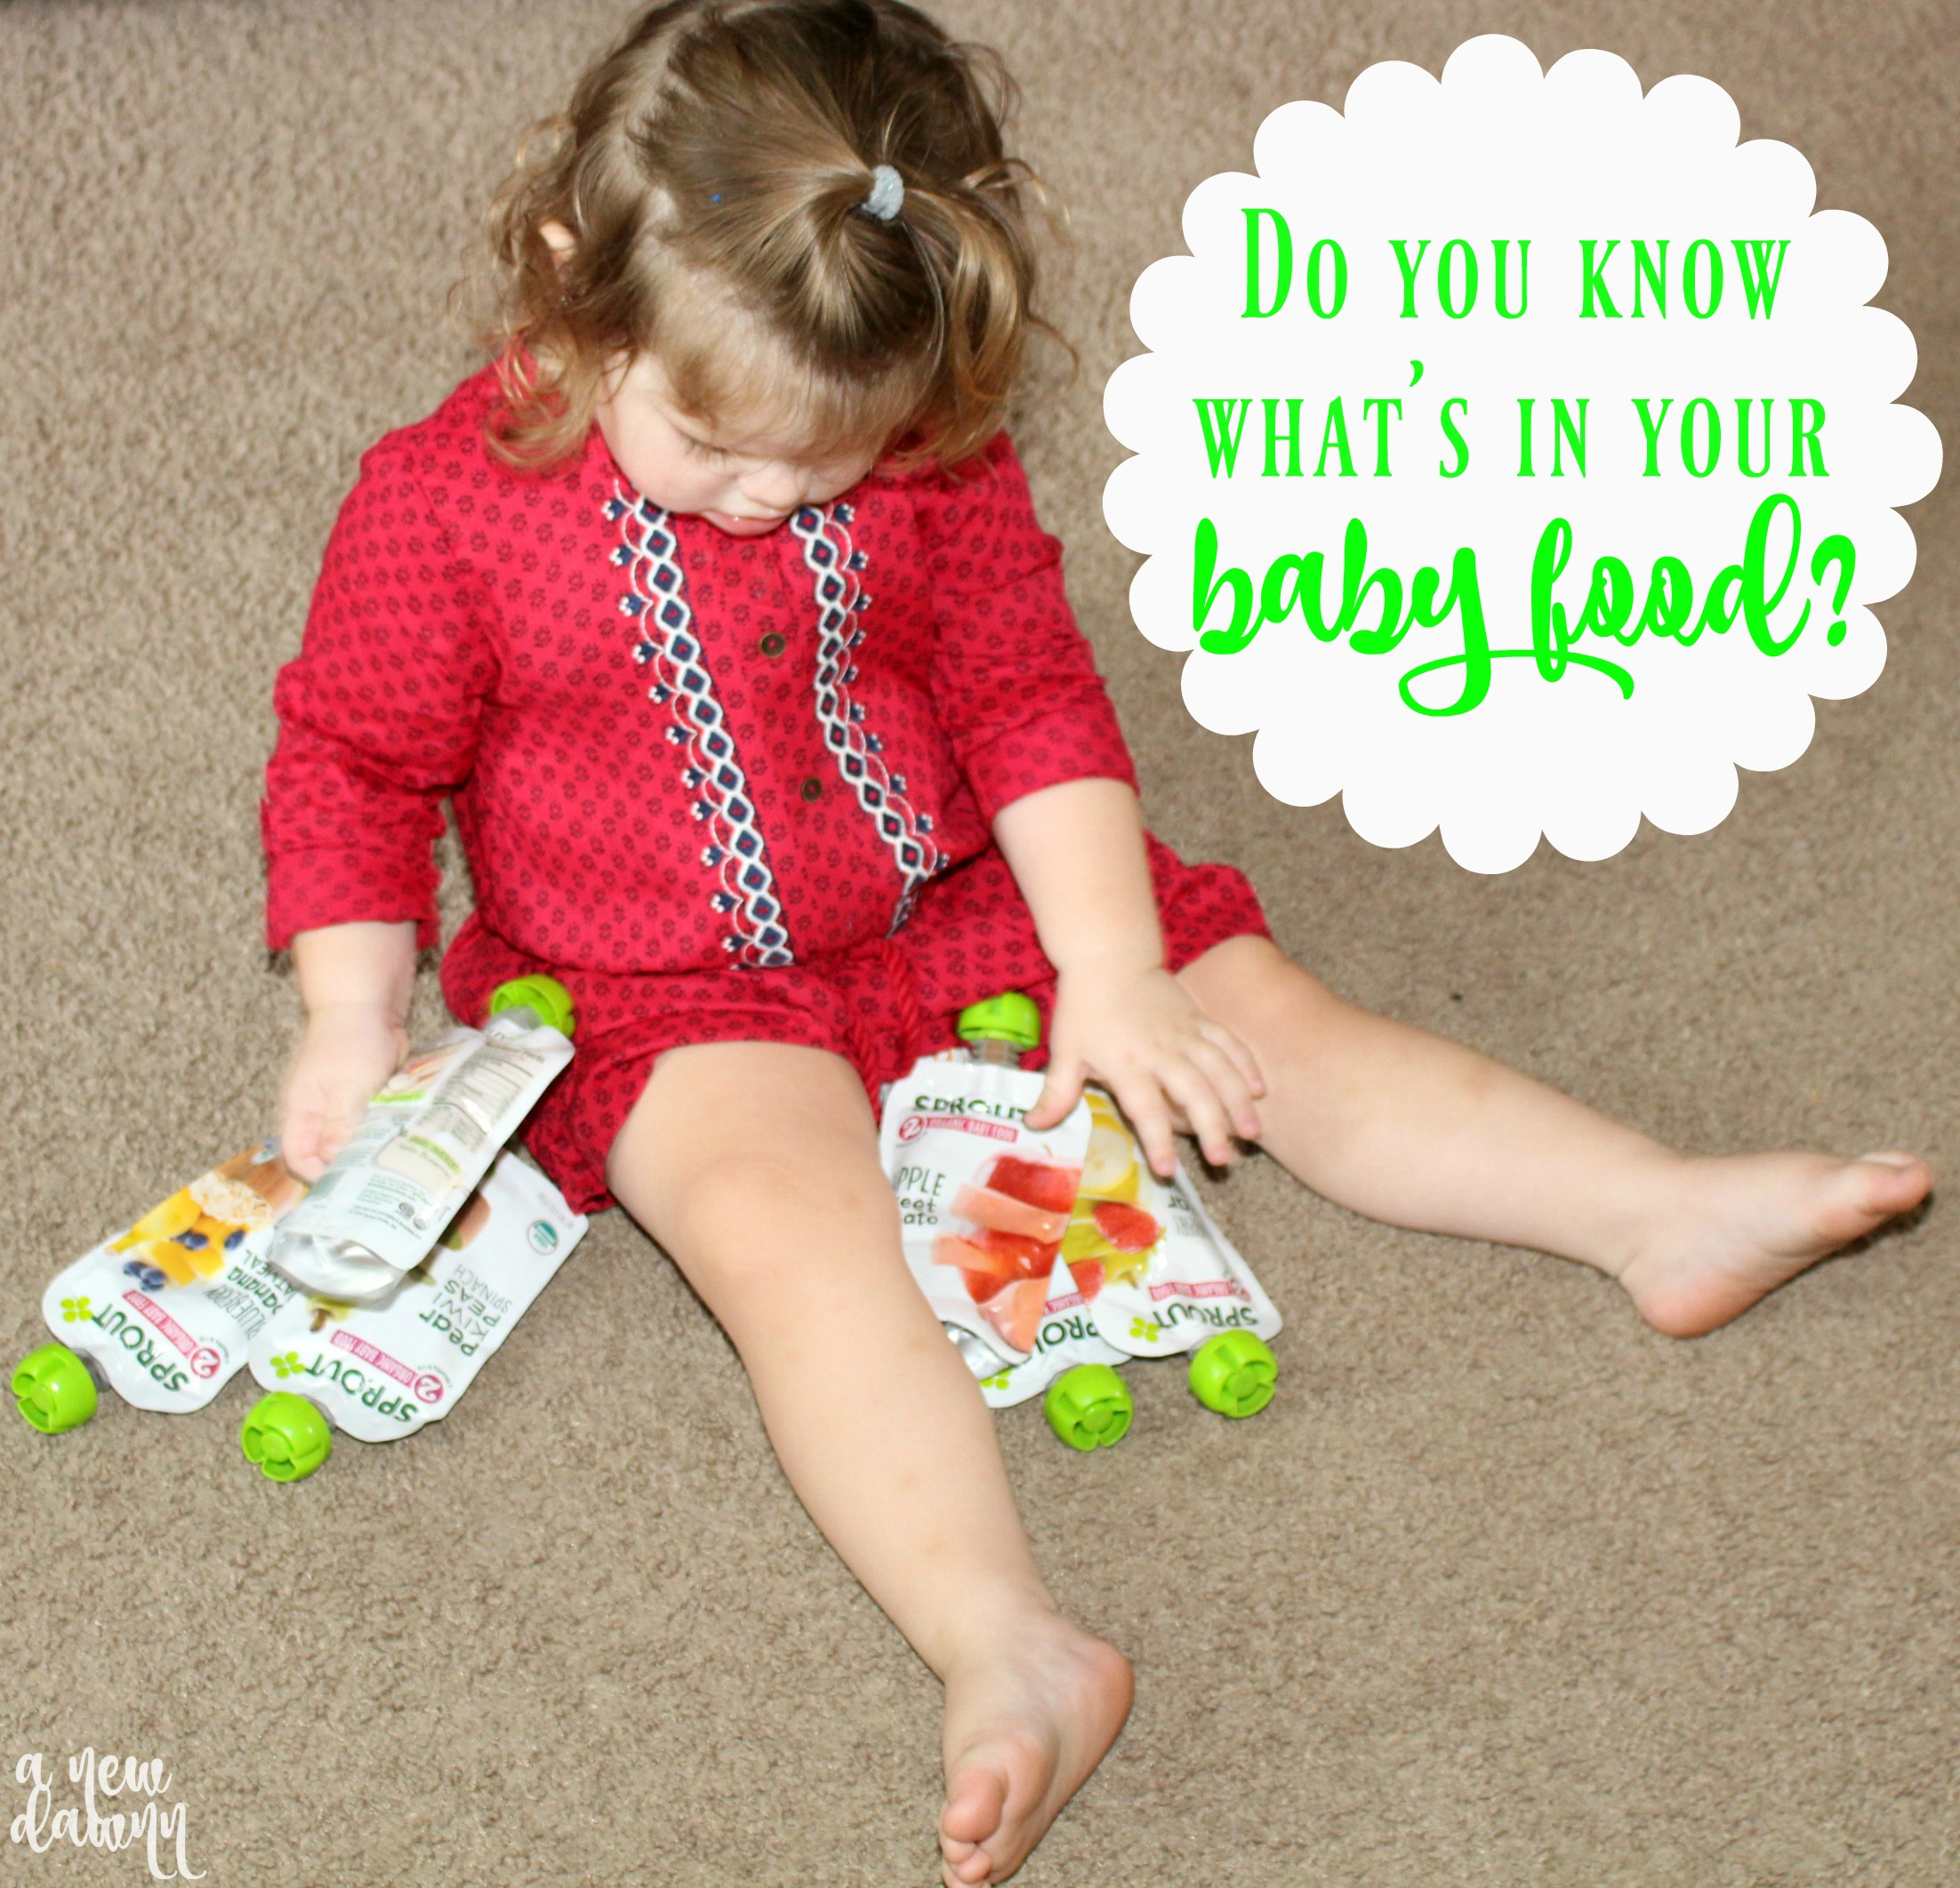 whats-in-your-baby-food